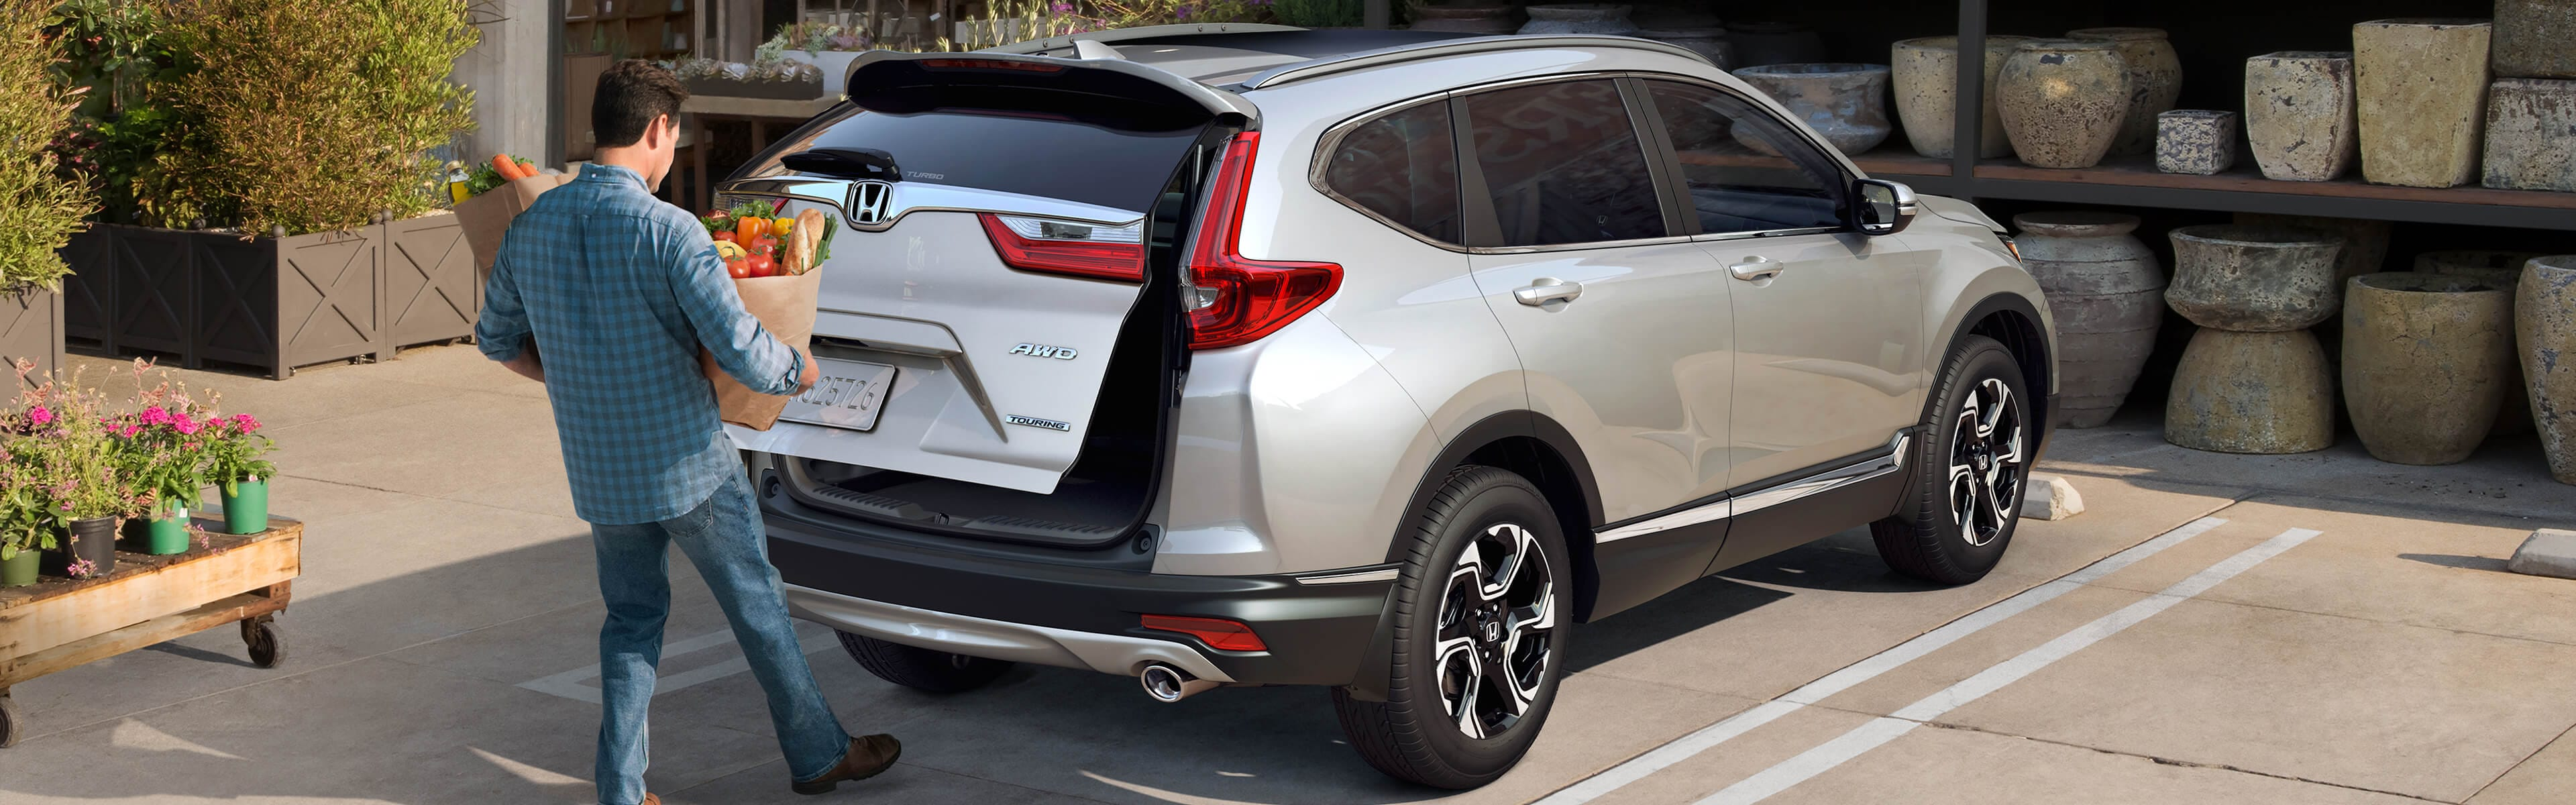 Image of 2018 CR-V hands-free power tailgate